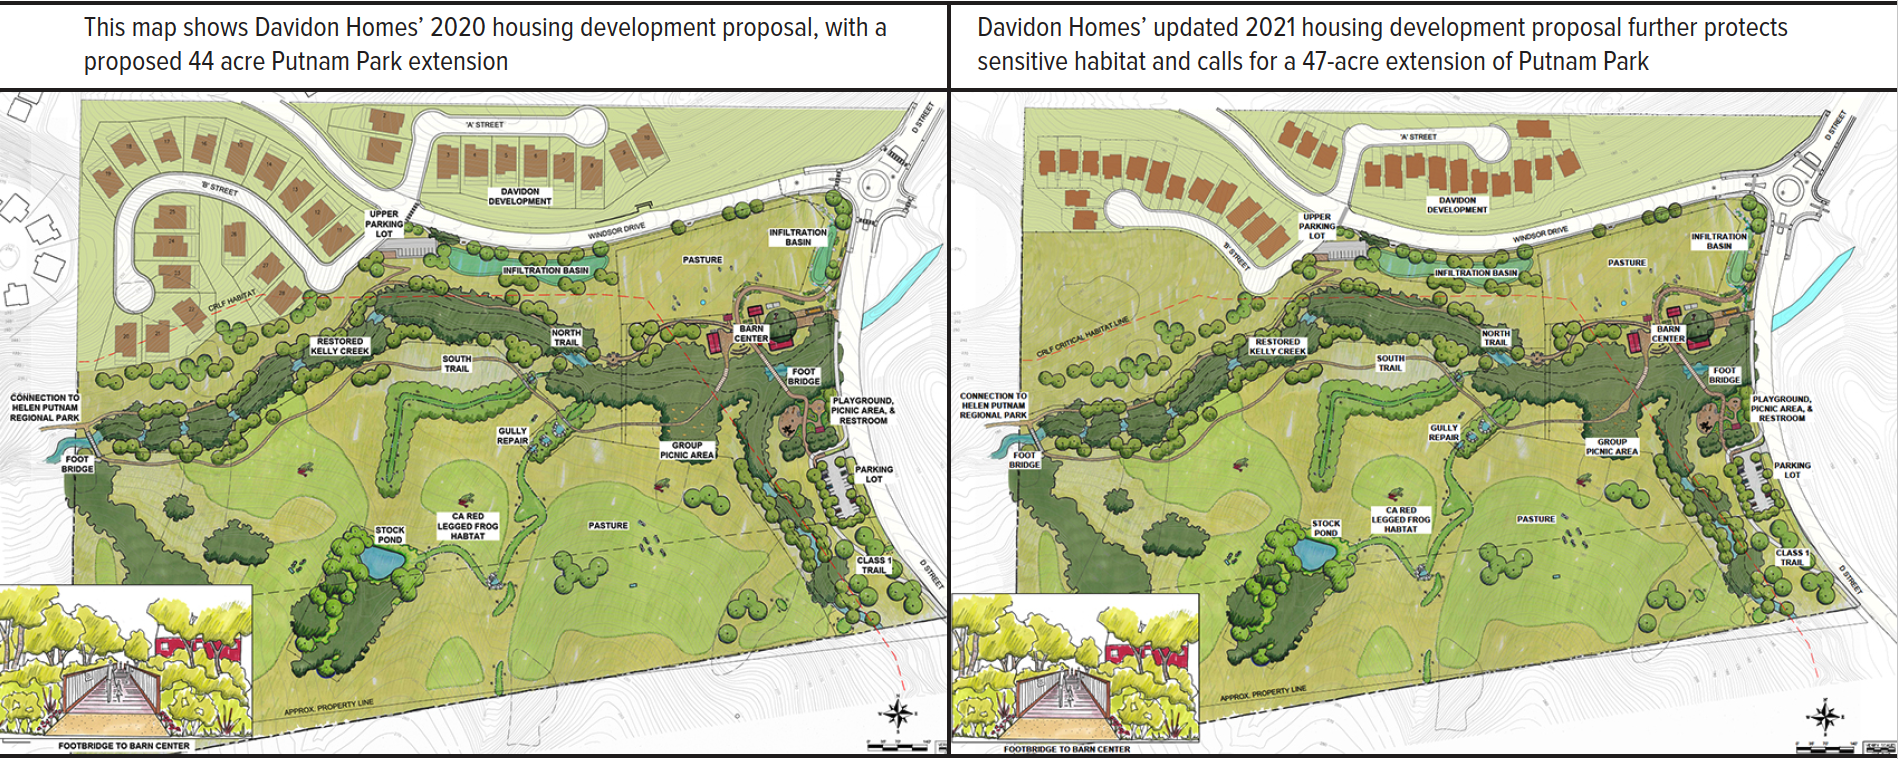 Side by side comparison of 2 versions of Map of proposed park extension and housing plan. Details include drawings of the proposed homes, new streets, riparian area around Kelly Creek, parking lots, and barn center. The map includes labels that show the two proposed infiltration basins, new trails, and other details.